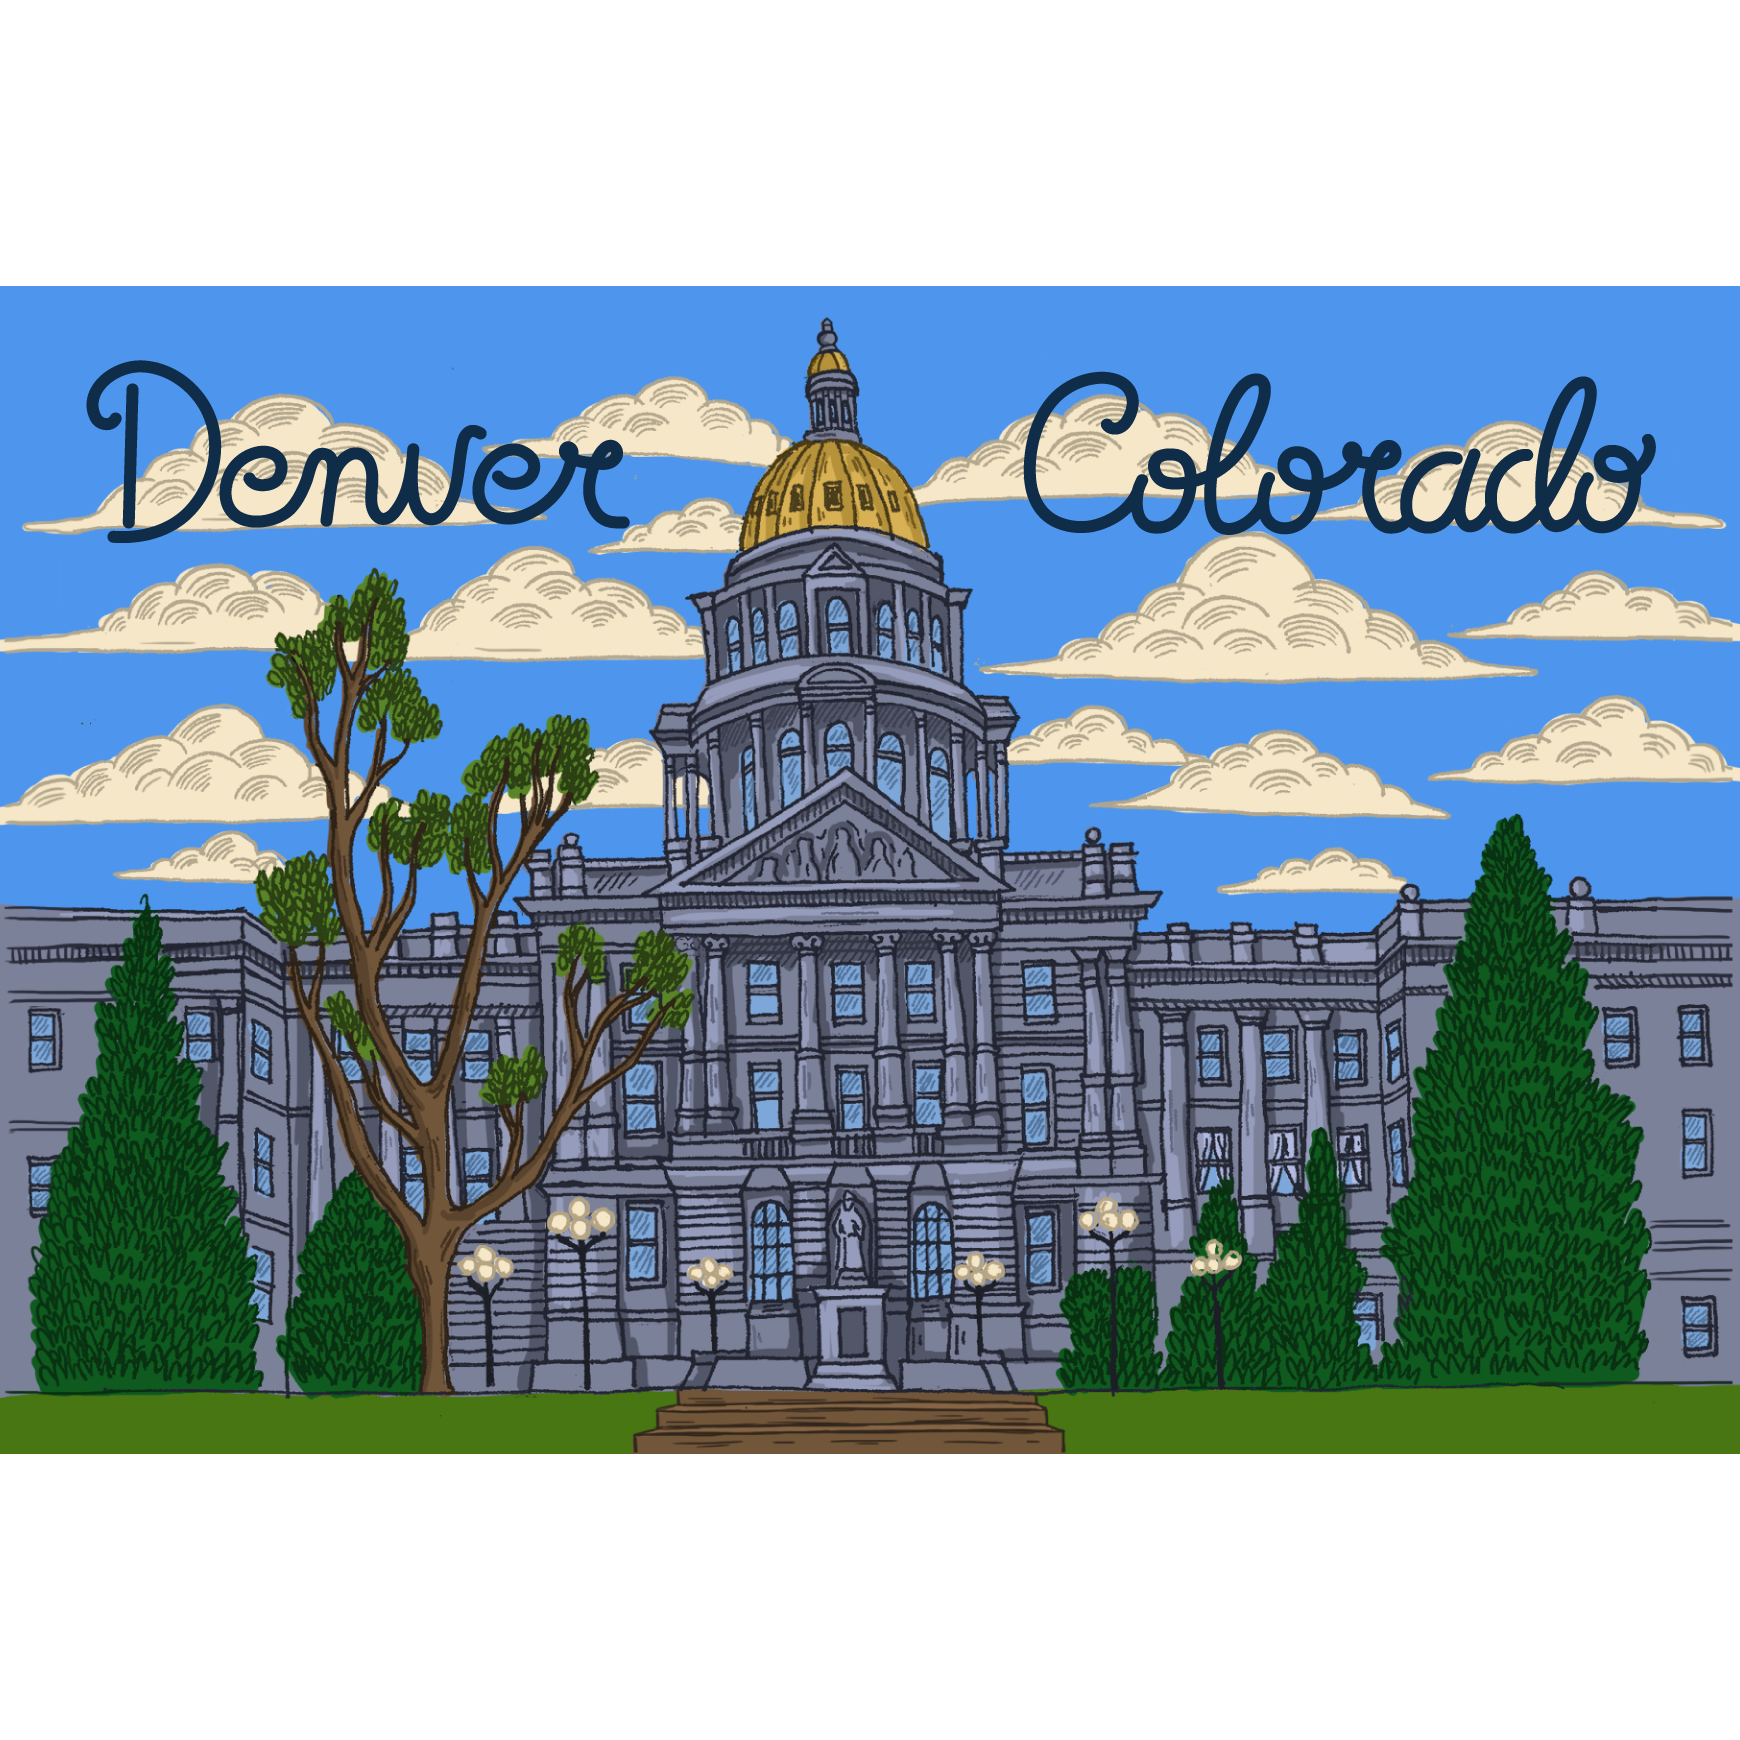 capitol-postcard-4x6-with-bleed- for insta 2.png